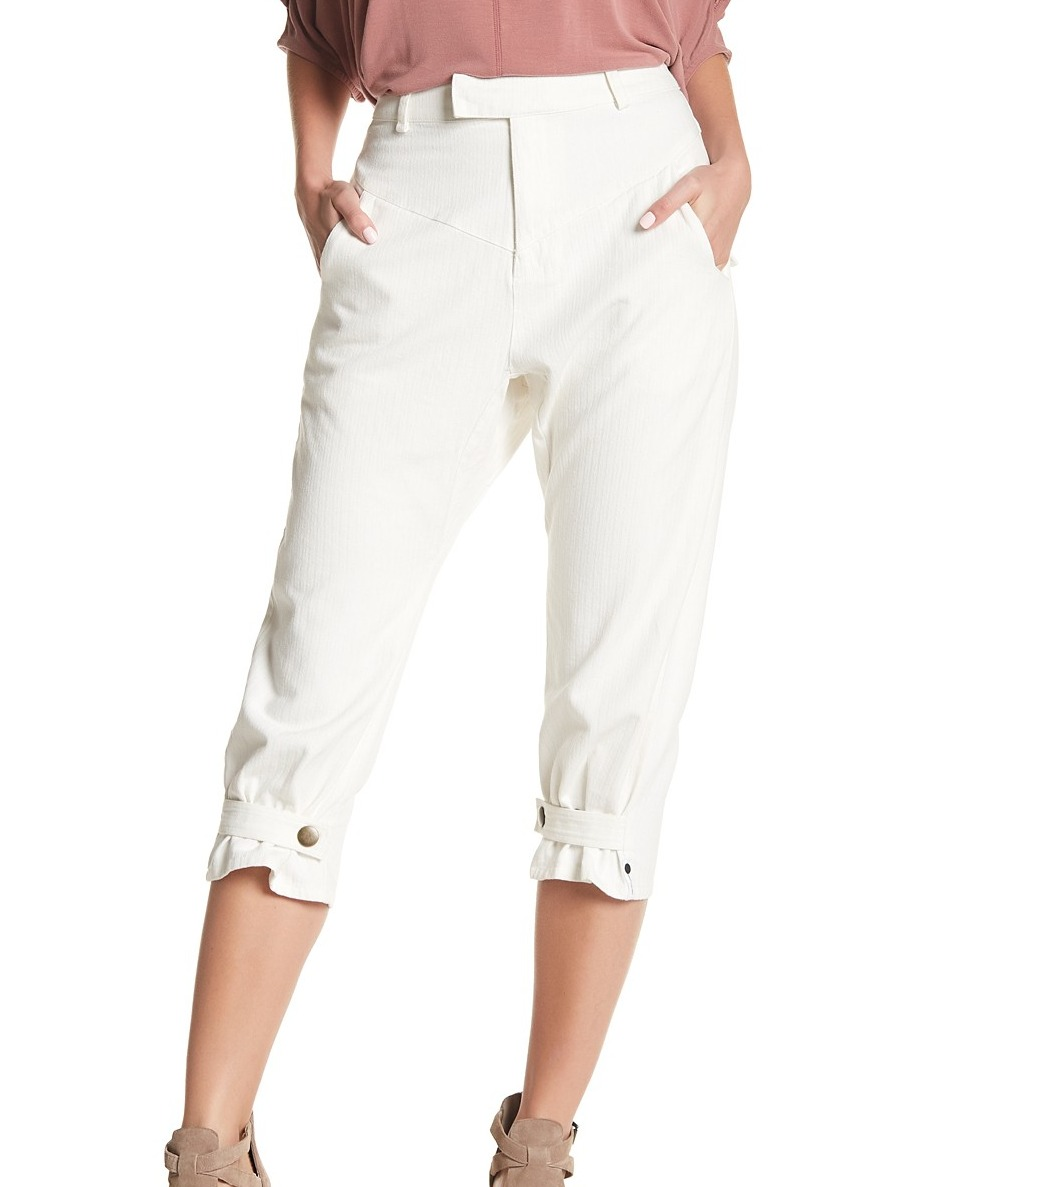 One Teaspoon NEW White Women s Size XS Sailor Chapman Cropped Pants  146-   480 f13eca18d